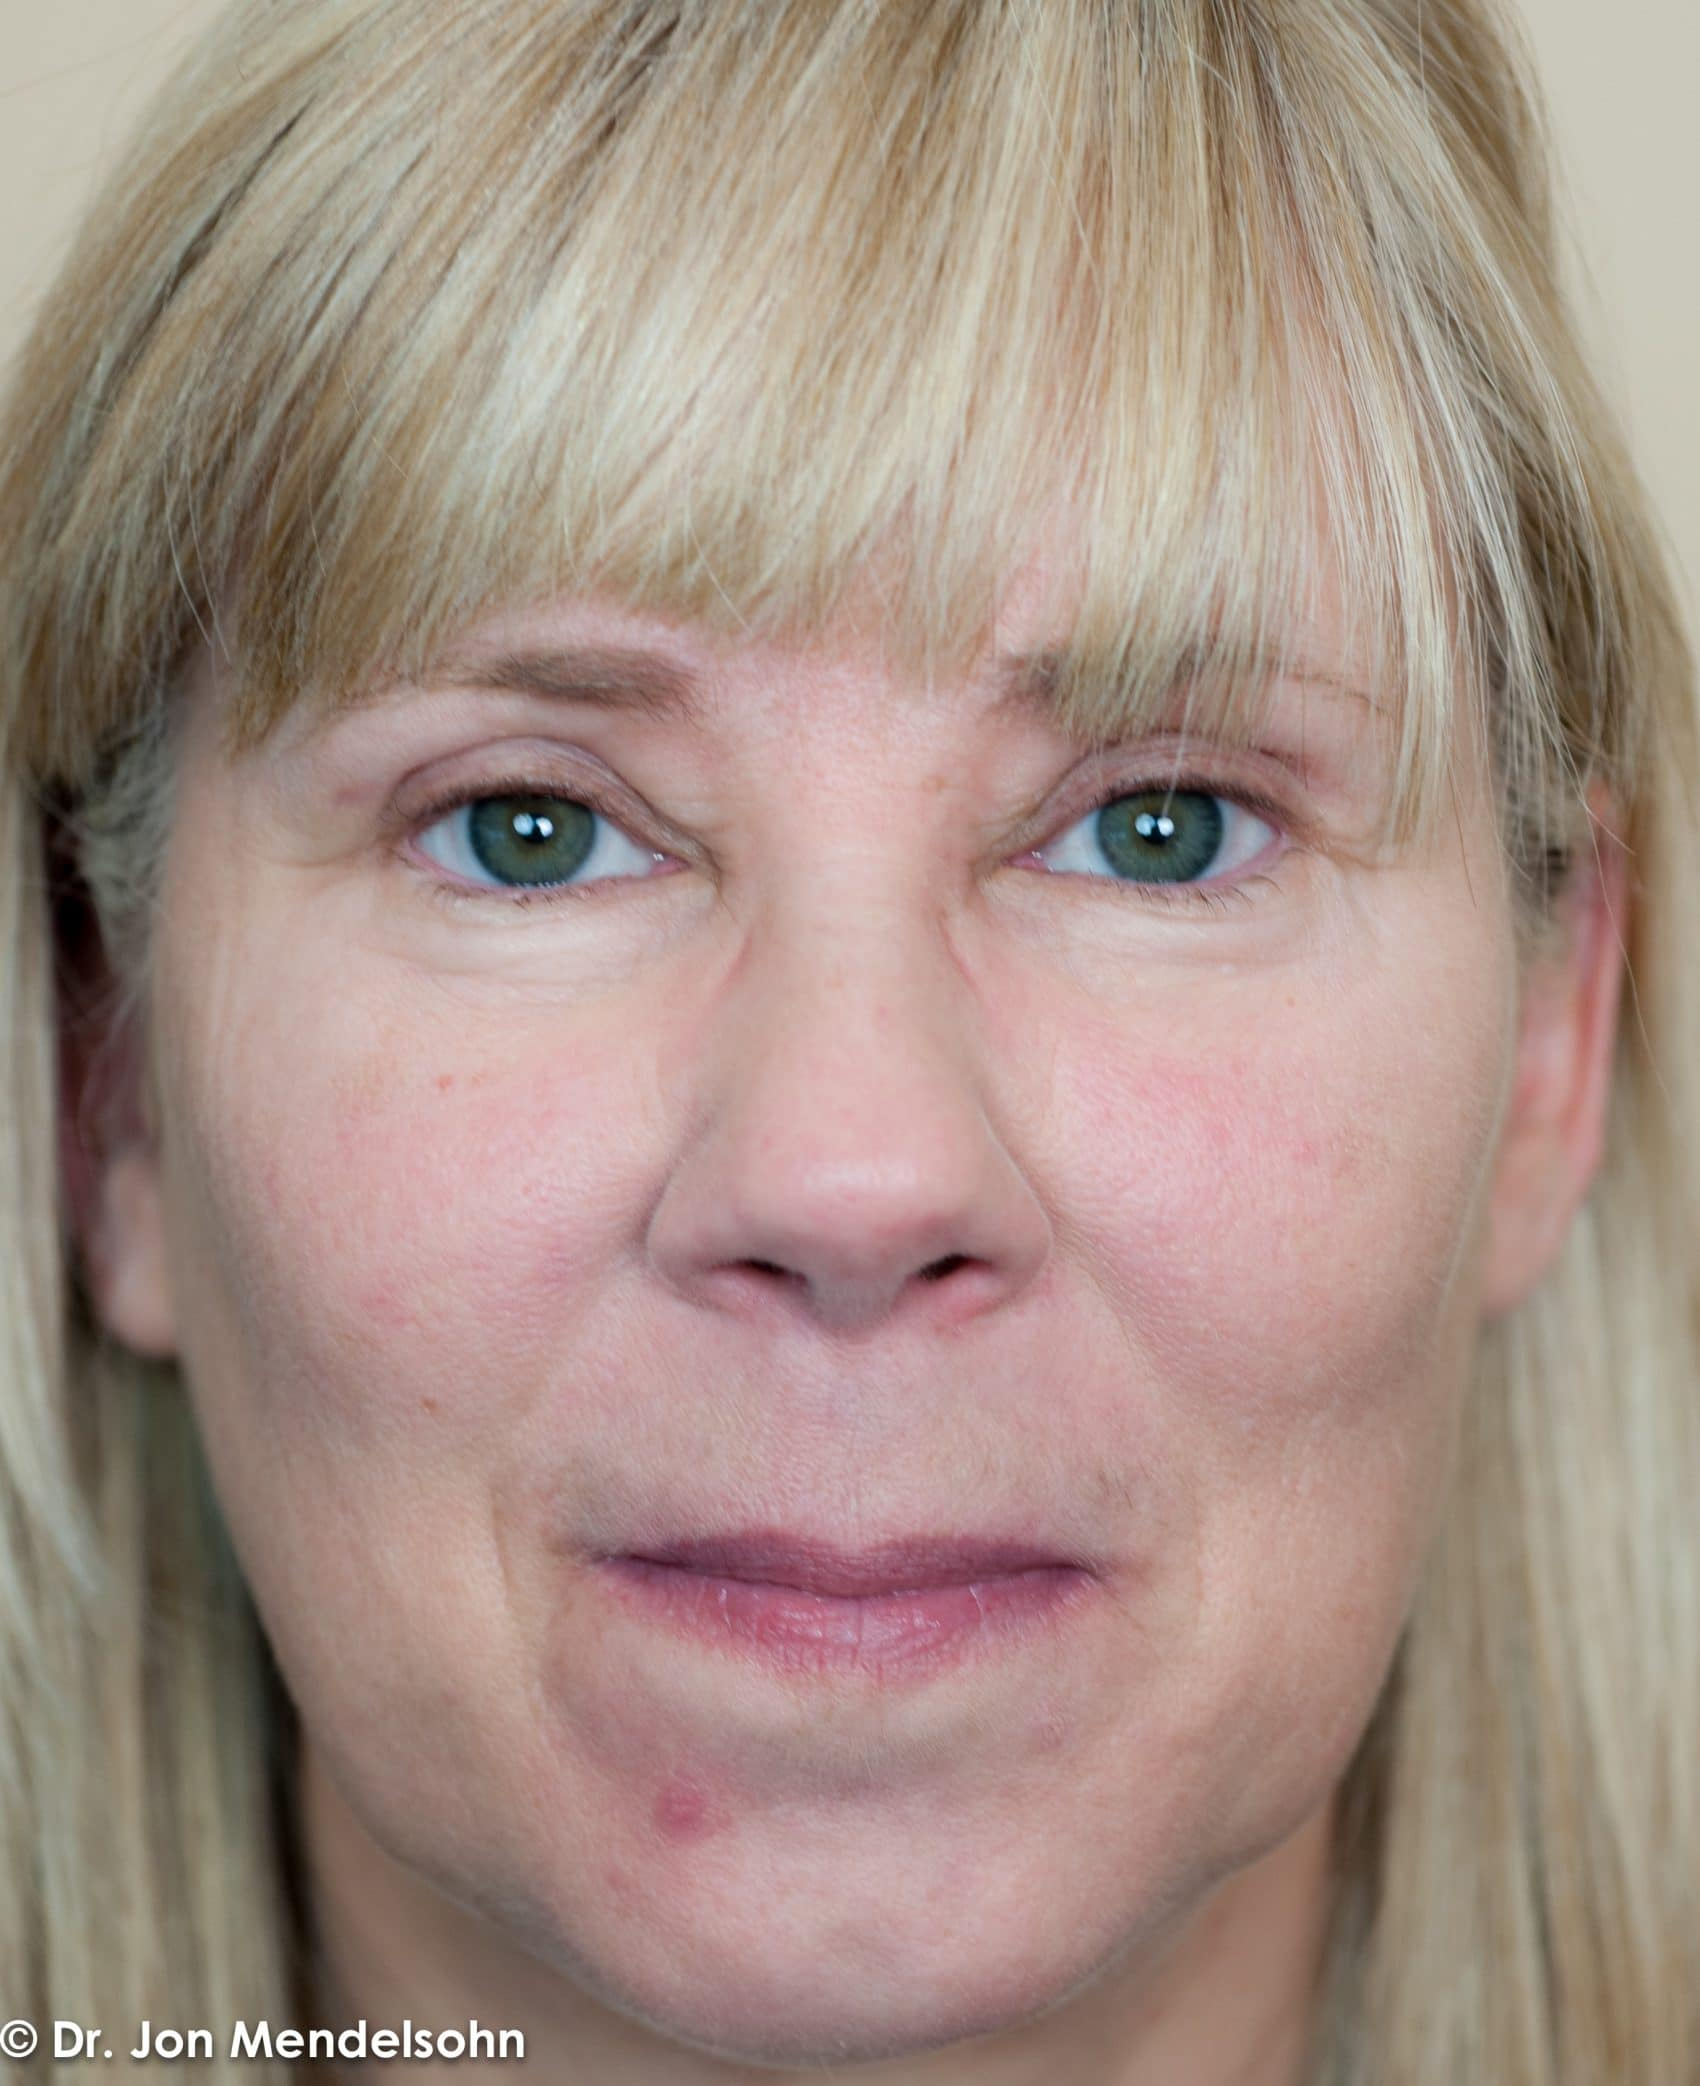 Upper-blepharoplasty-eyelid-surgery-cincinnati-dr-jon-mendelsohn-best-eyelid-surgery-plastic-surgery-realself-truseselfies-frontal-after-Margerum_Michelle-900-2